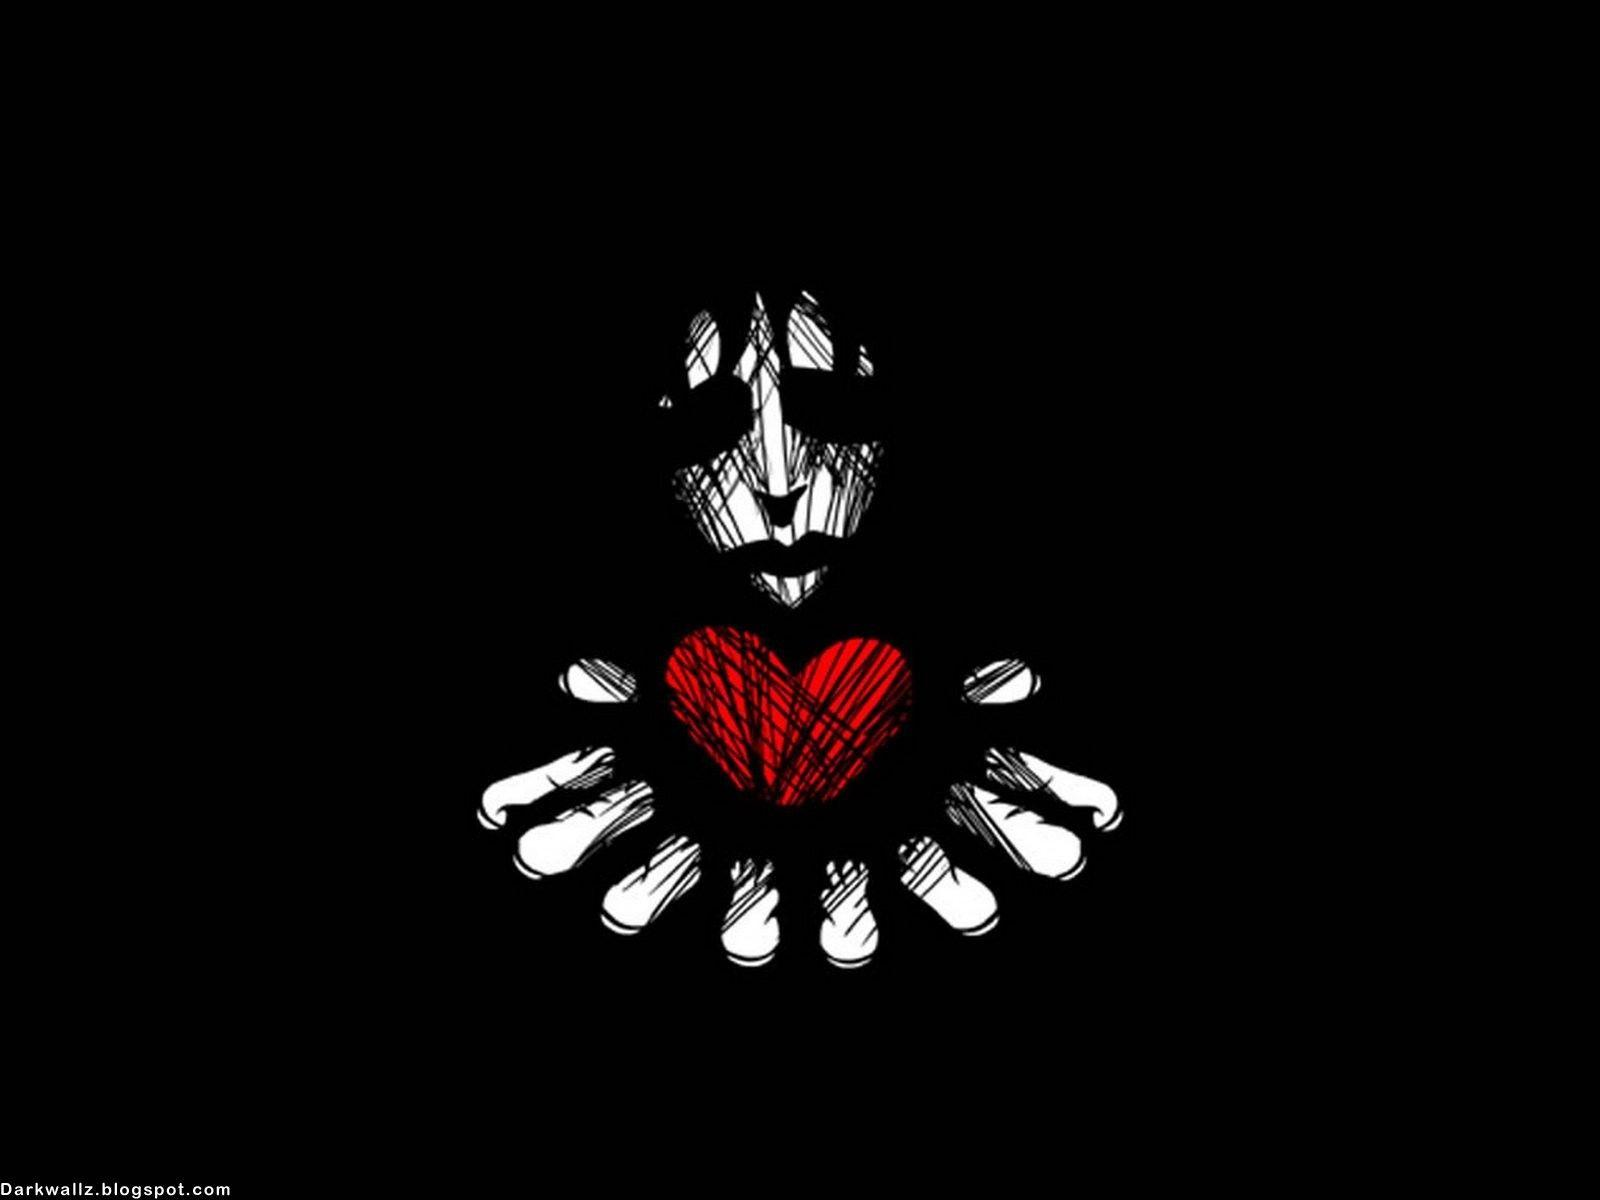 Emo Wallpapers Dark Wallpapers High Quality Black Gothic FREE .